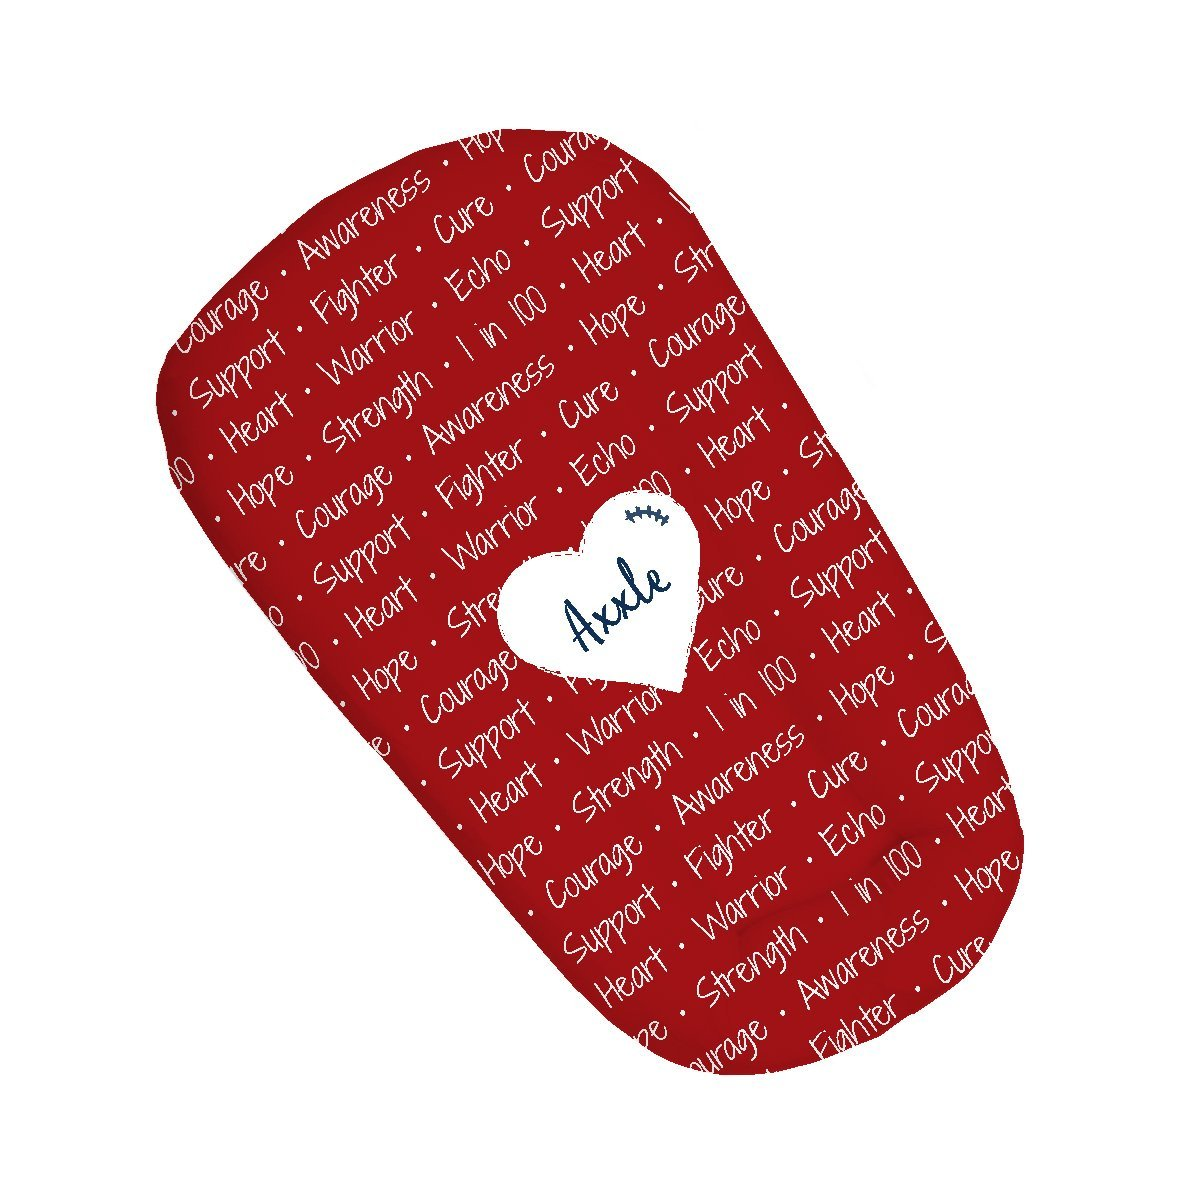 Axxle's Heart Warrior | Sleep Nest Covers for DockATot™